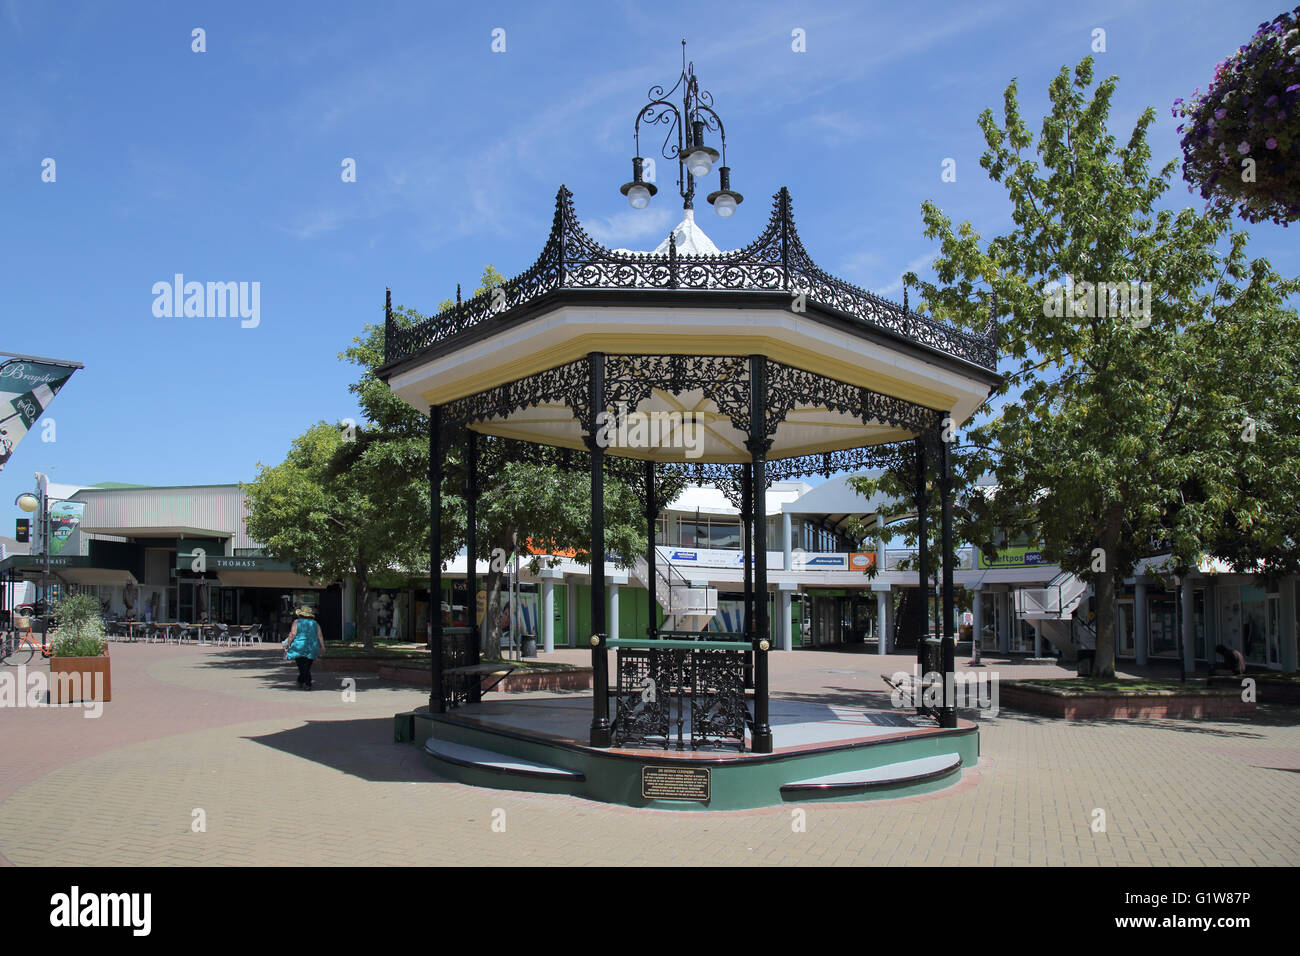 the bandstand in blenheim south island new zealand - Stock Image